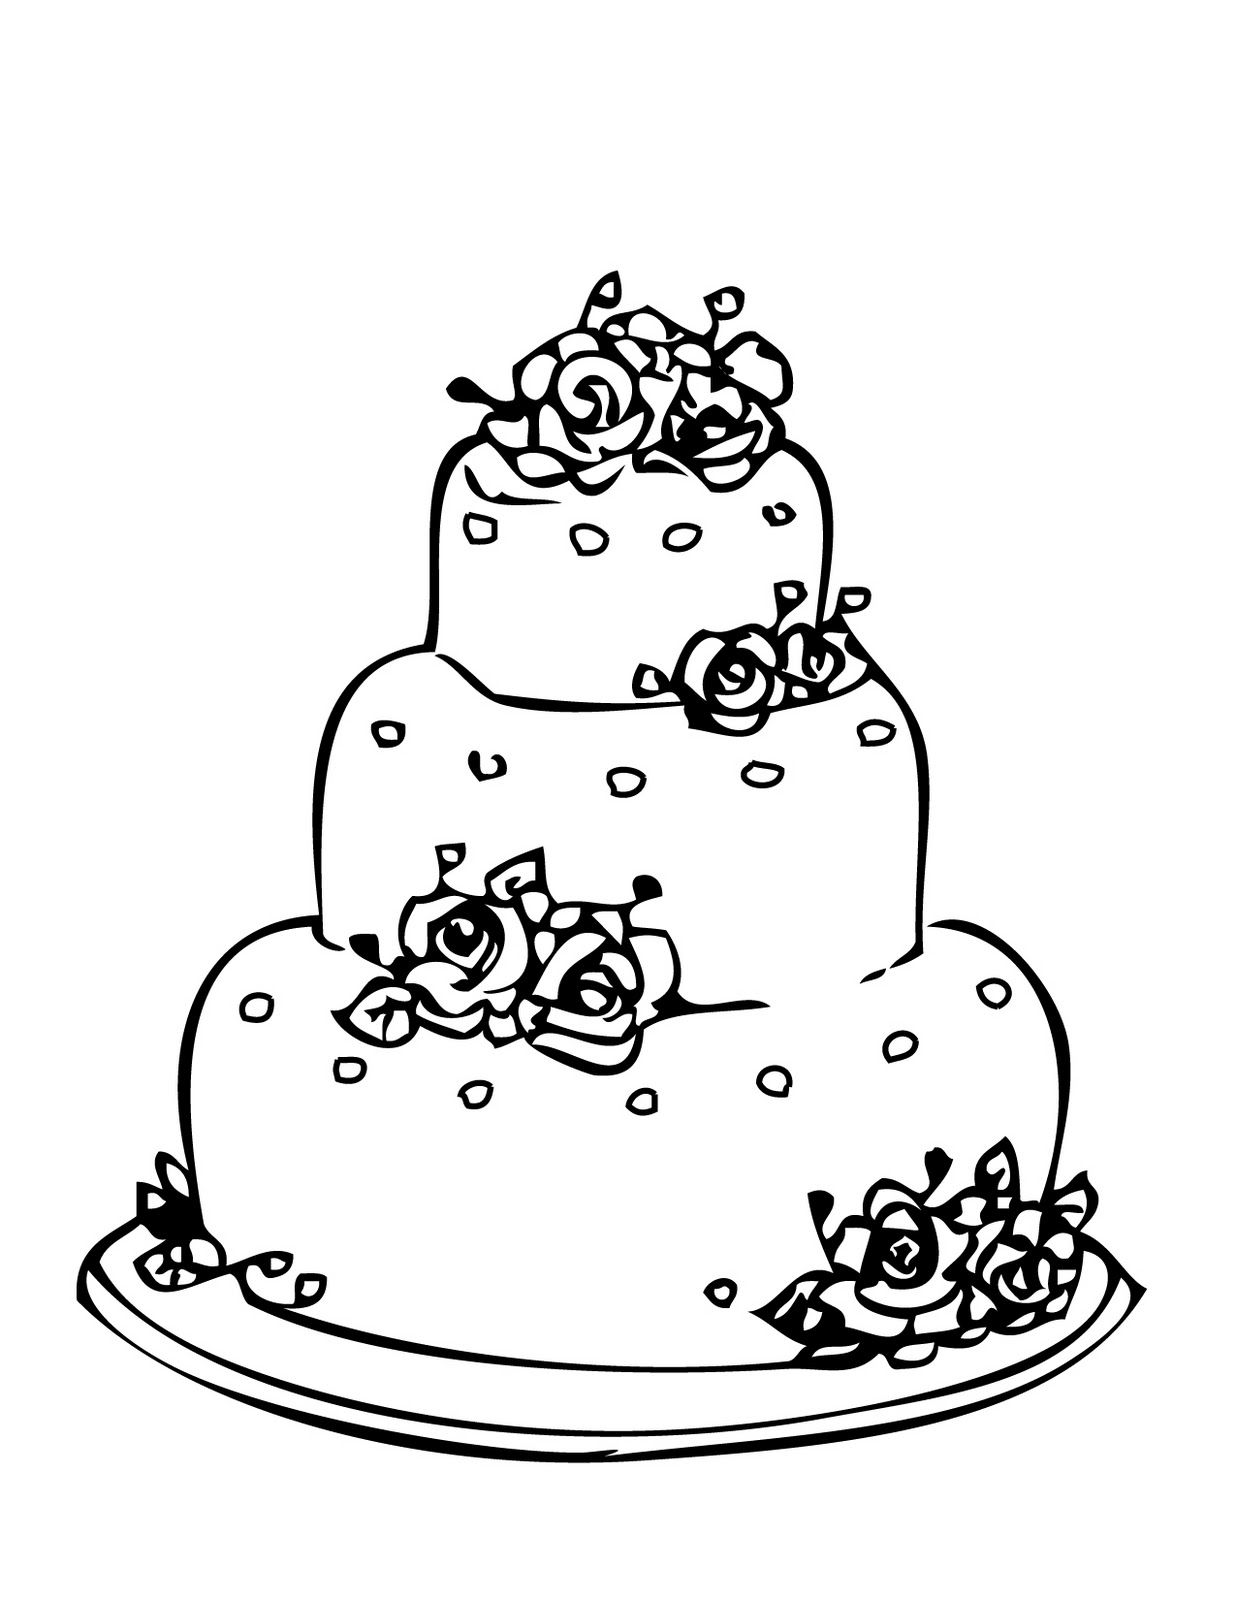 cake printables for coloring round wedding cake coloring pages to printing for cake coloring printables